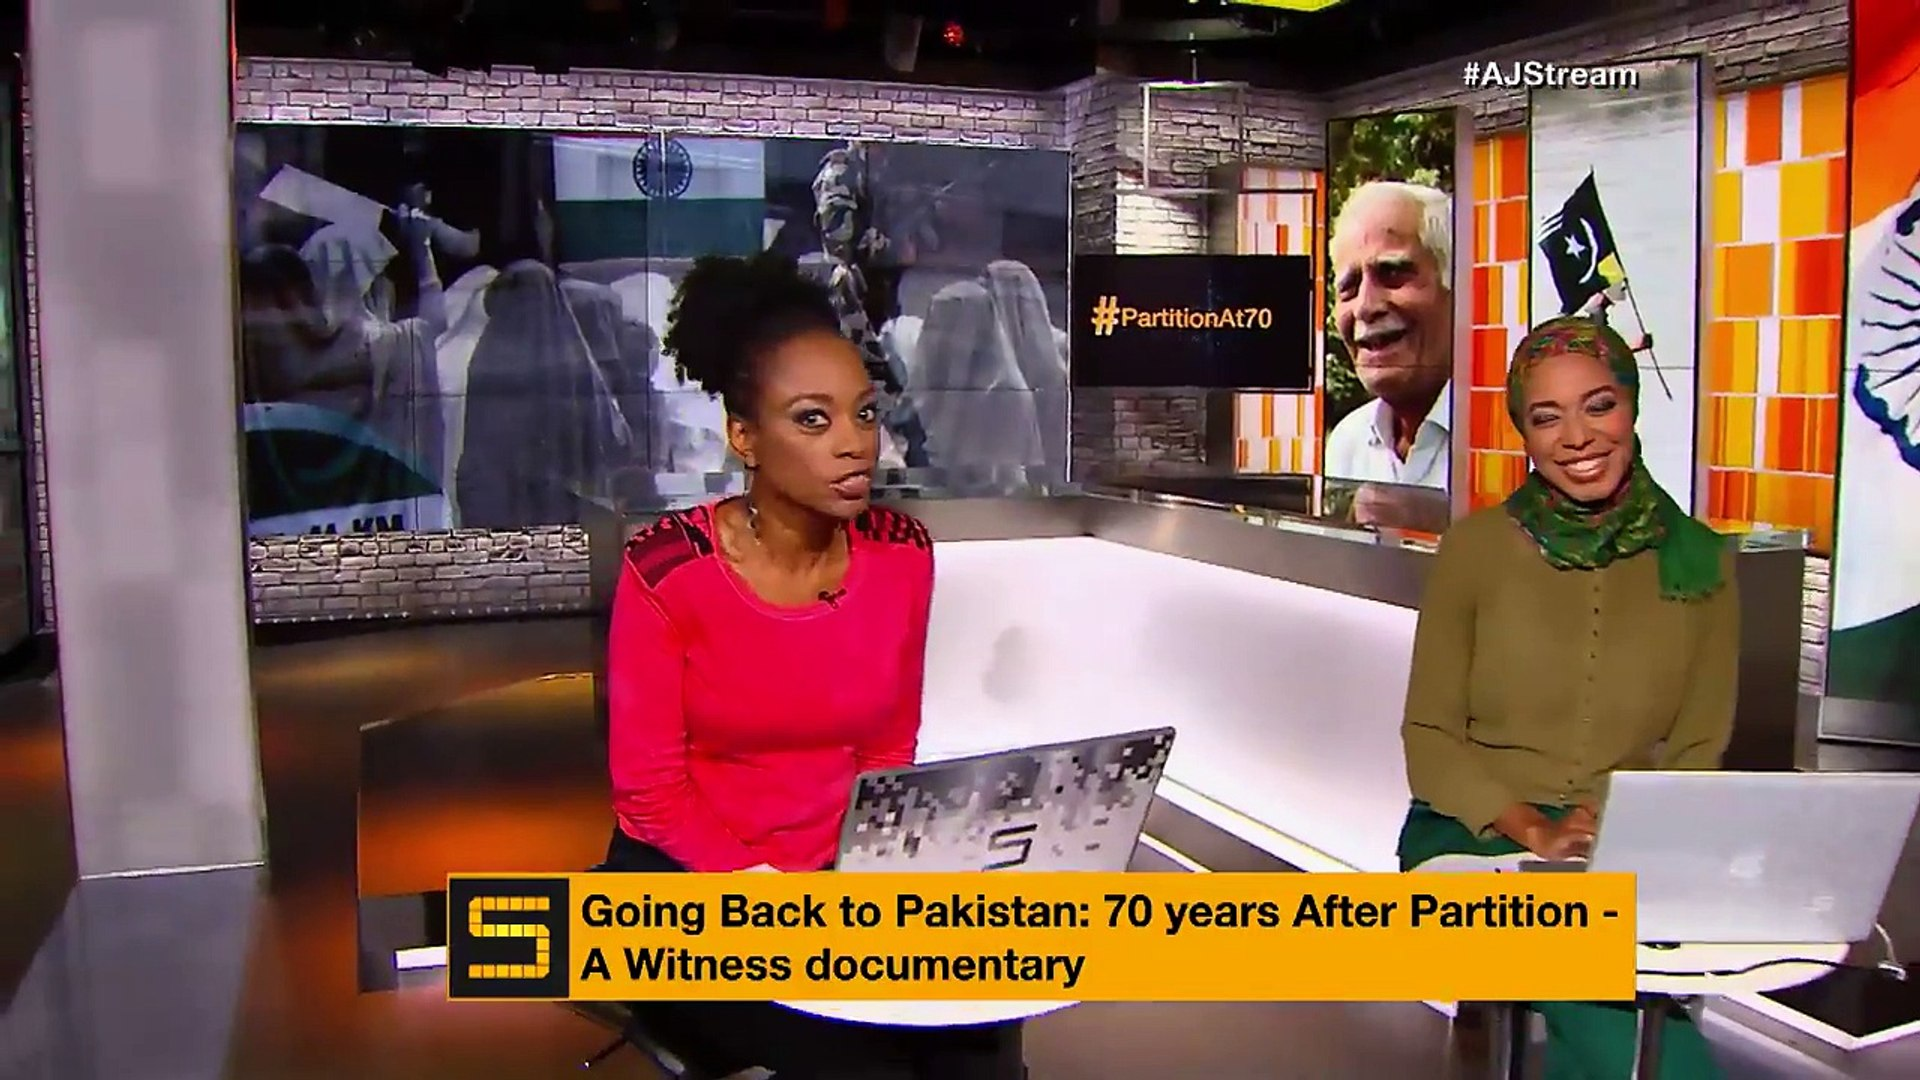 The inside story of one man's return to Pakistan after 70 years - The Stream